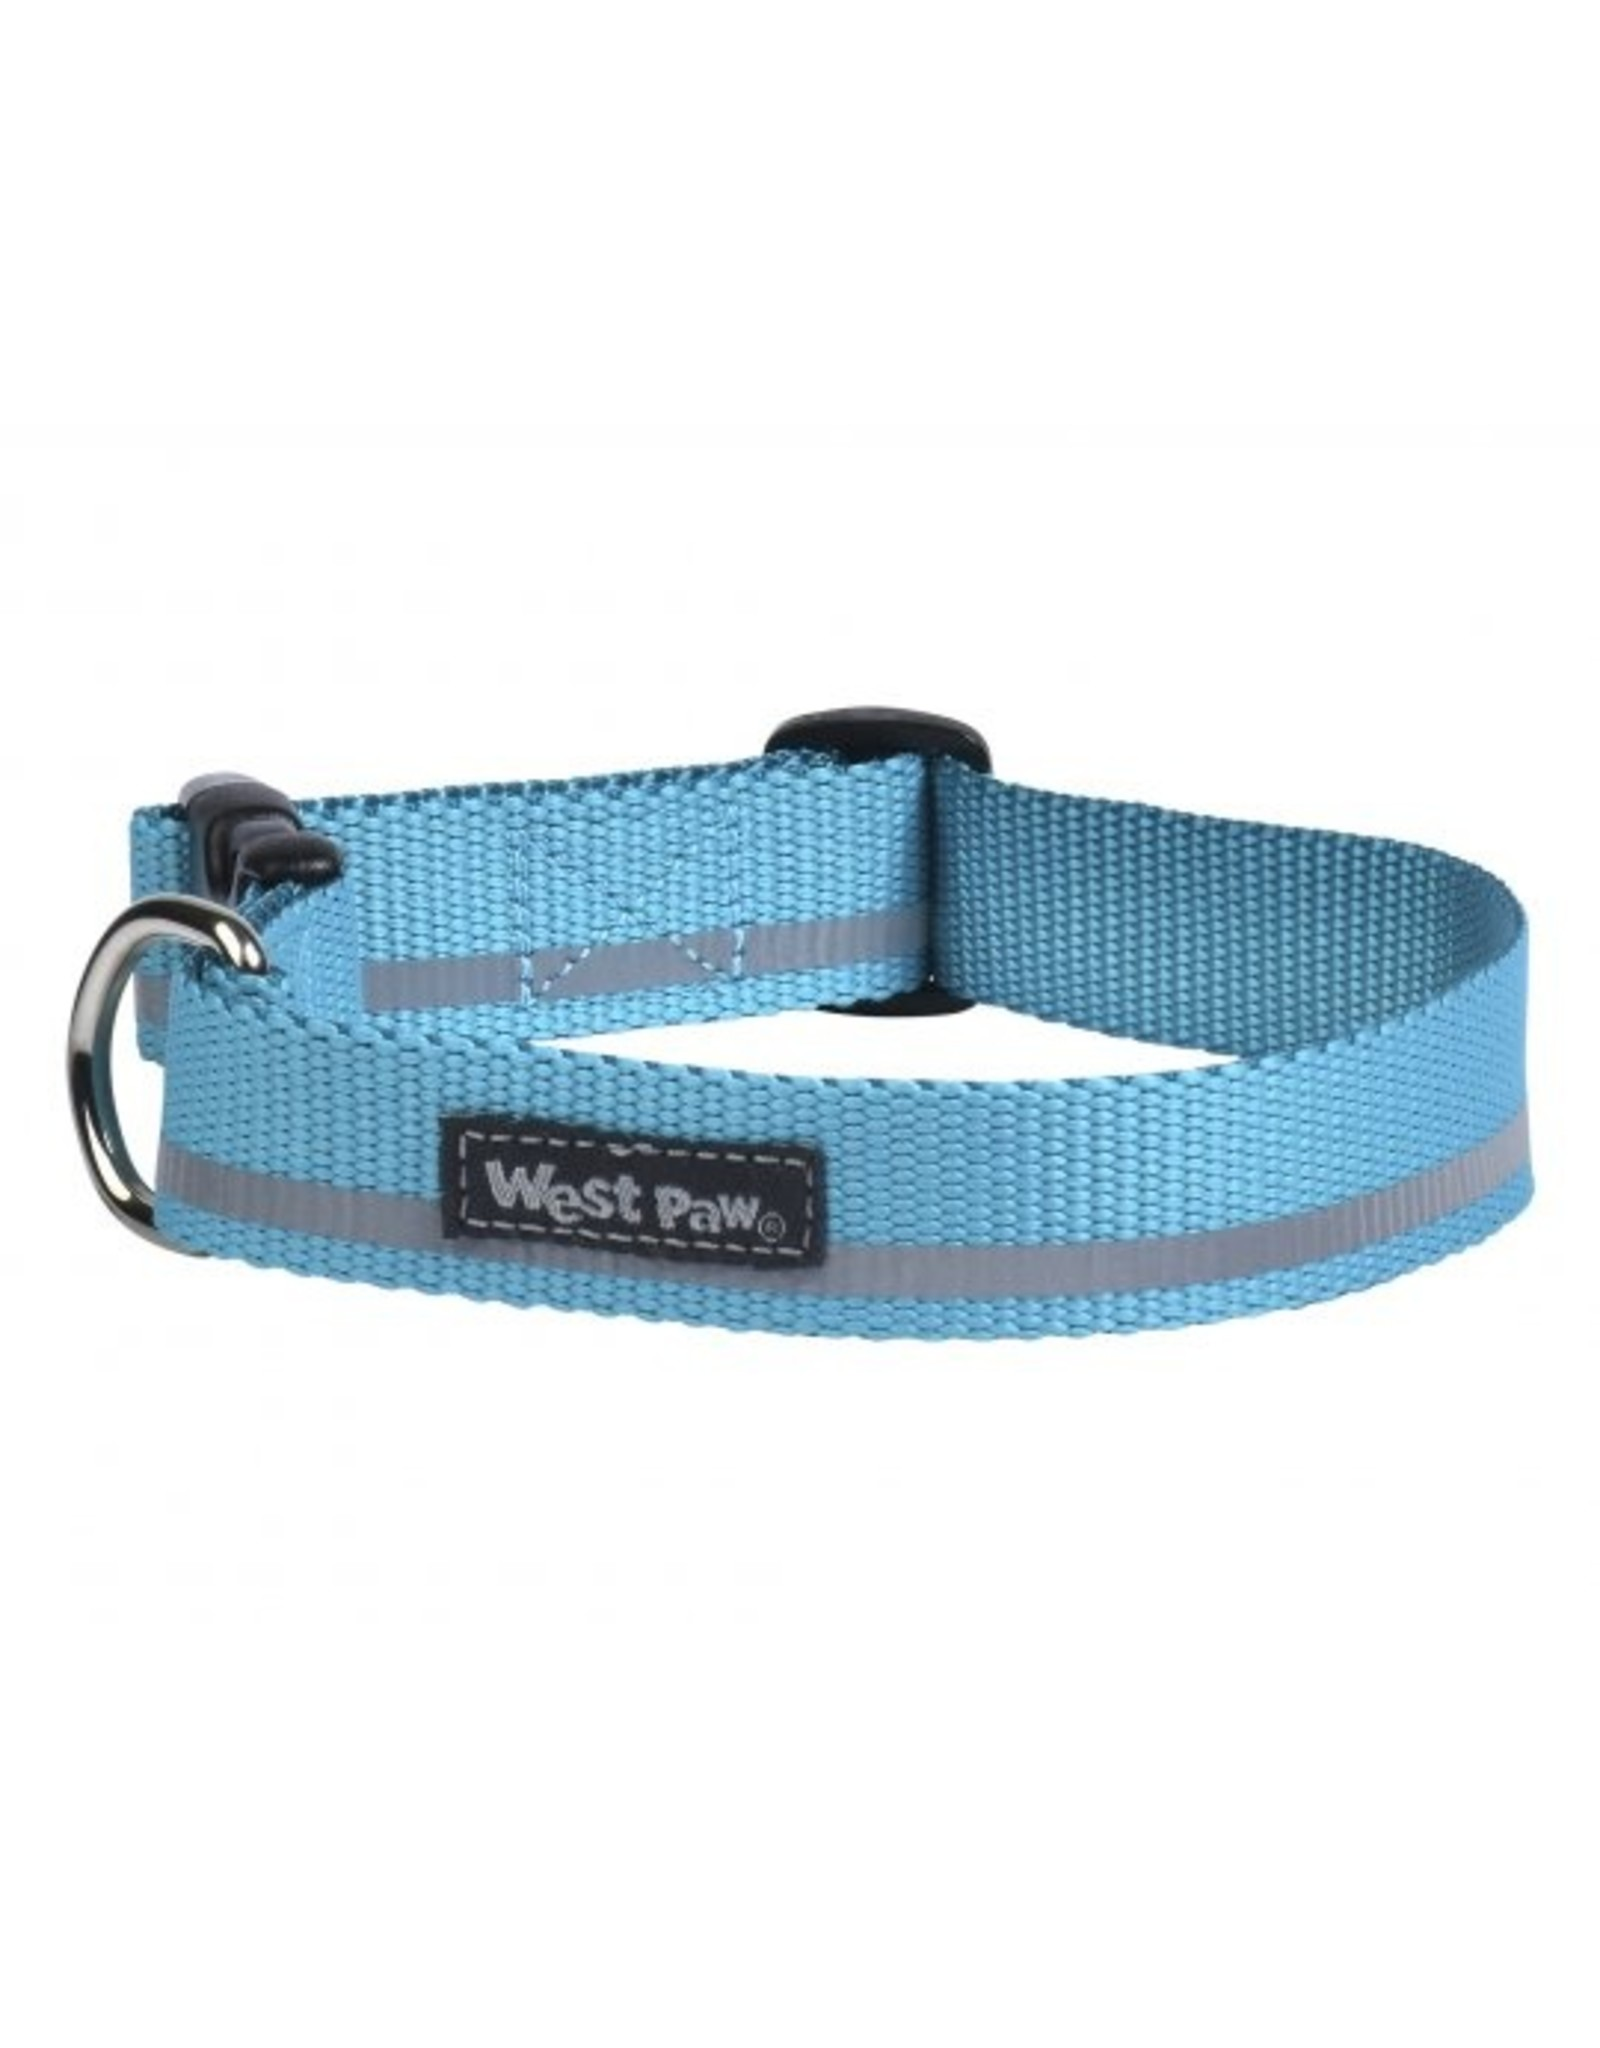 West Paw Designs Westpaw: Strolls Collar Small Turquoise Reflective